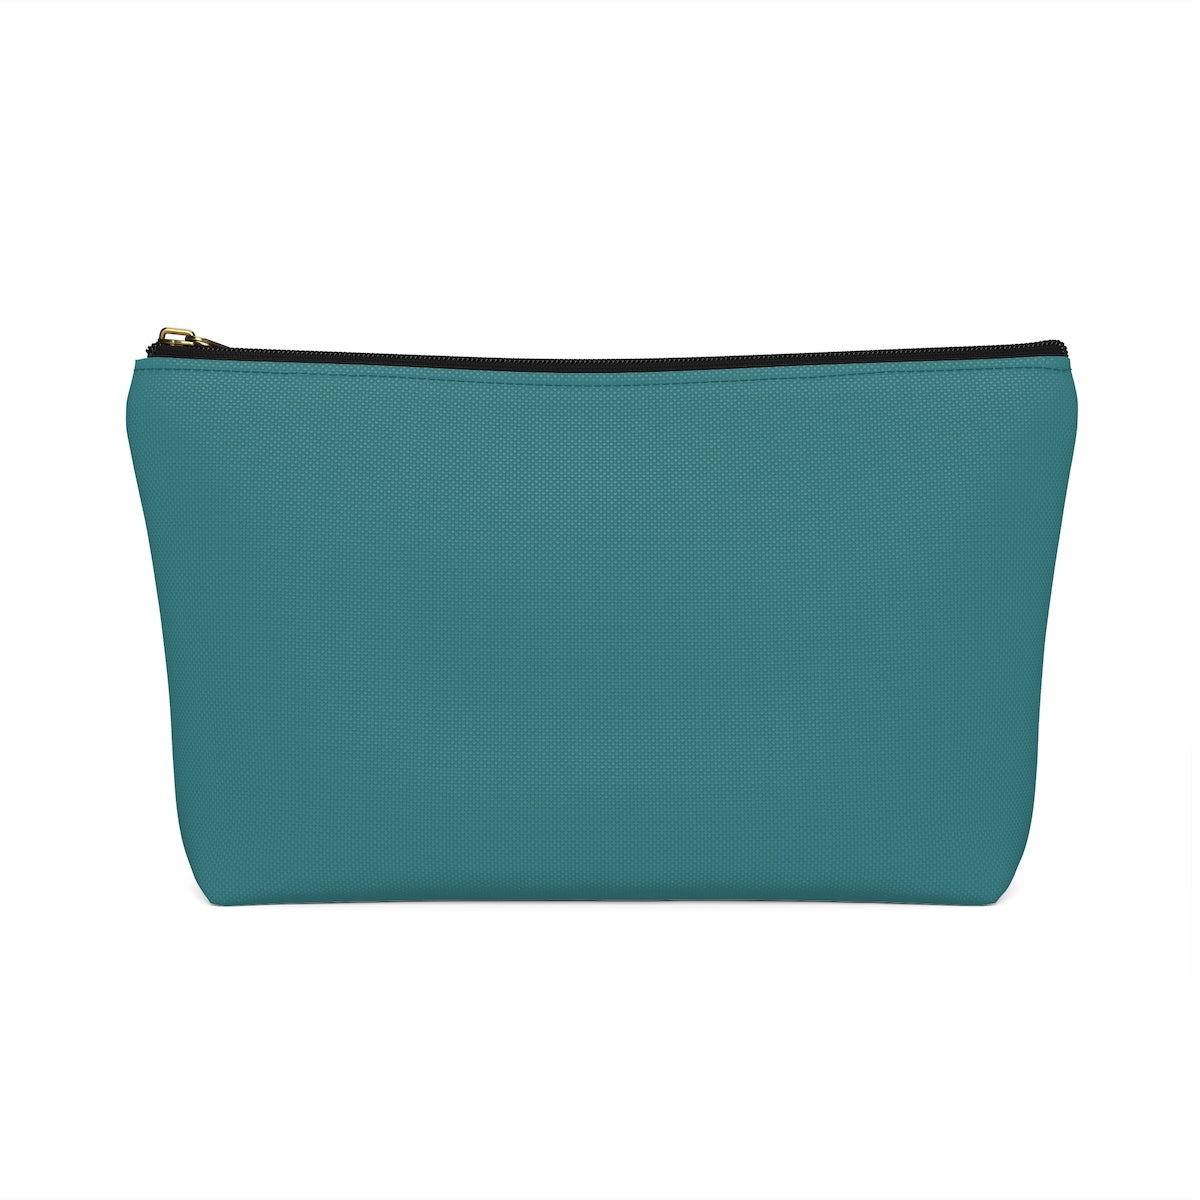 God's Square Mile Accessory Bag: Teal - GoGannon Designs